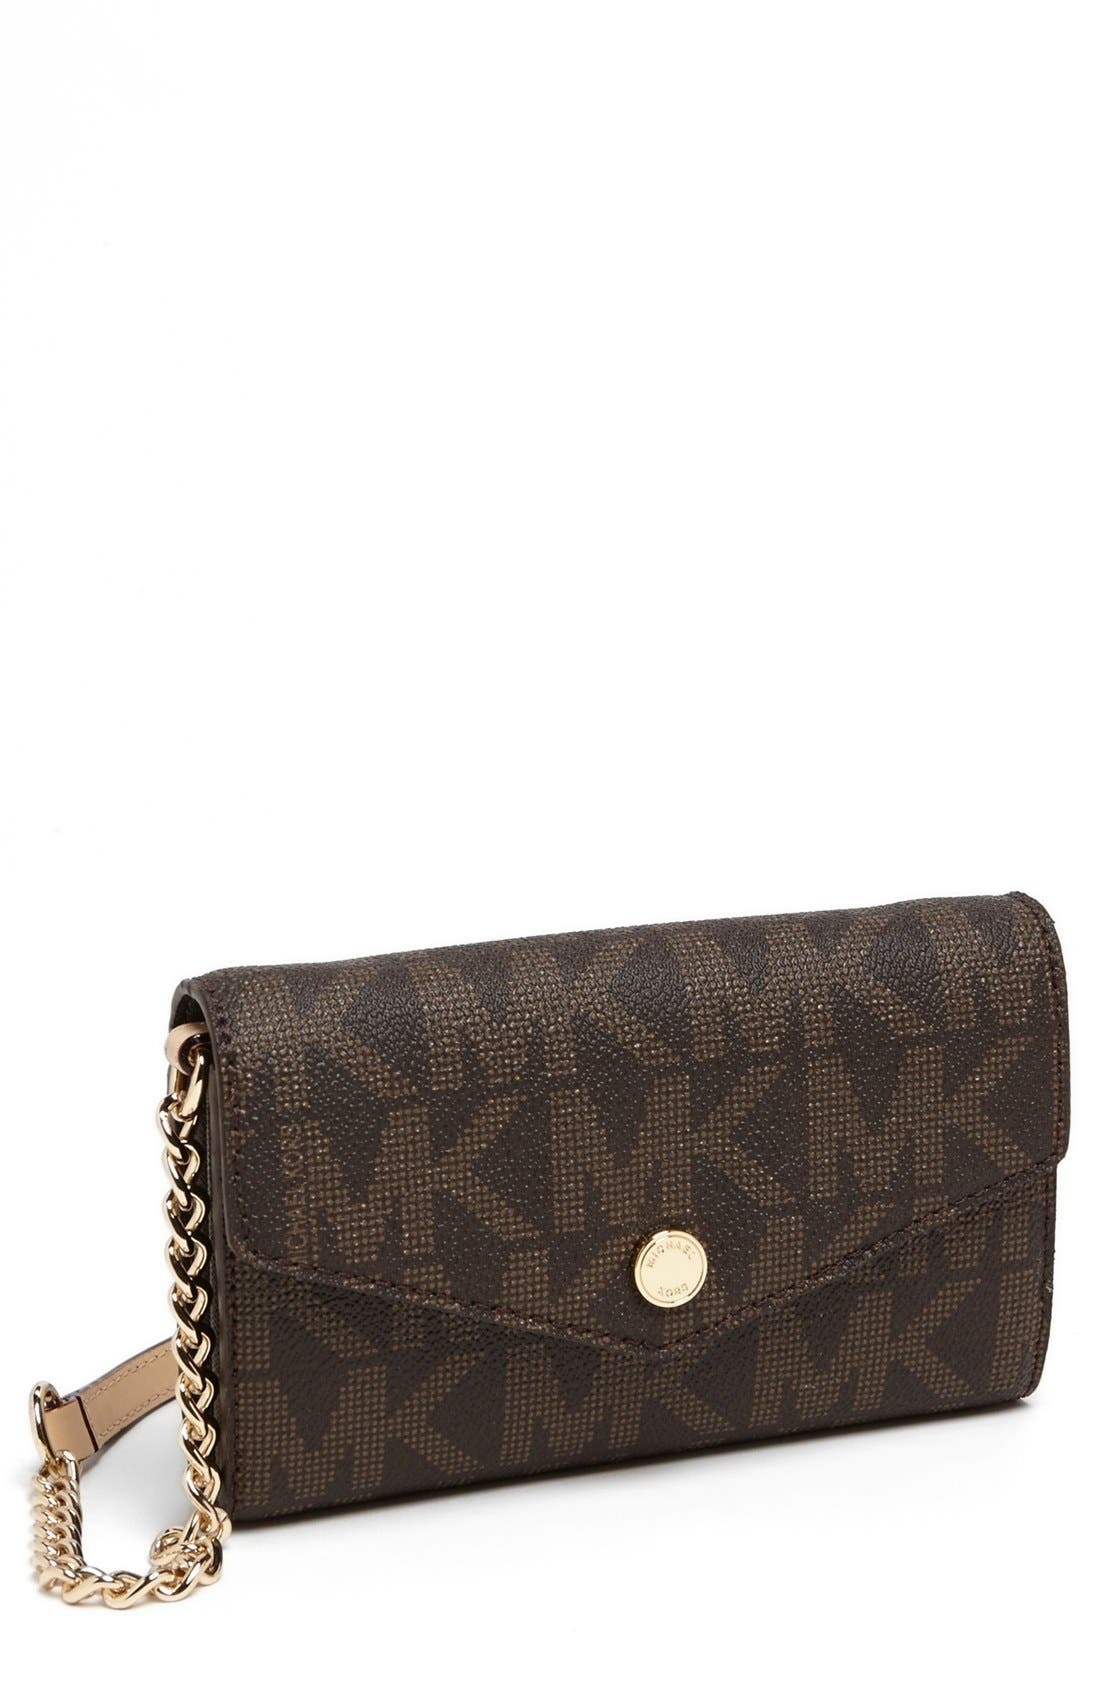 Alternate Image 1 Selected - MICHAEL Michael Kors 'Signature - Saffiano' Crossbody Phone Bag